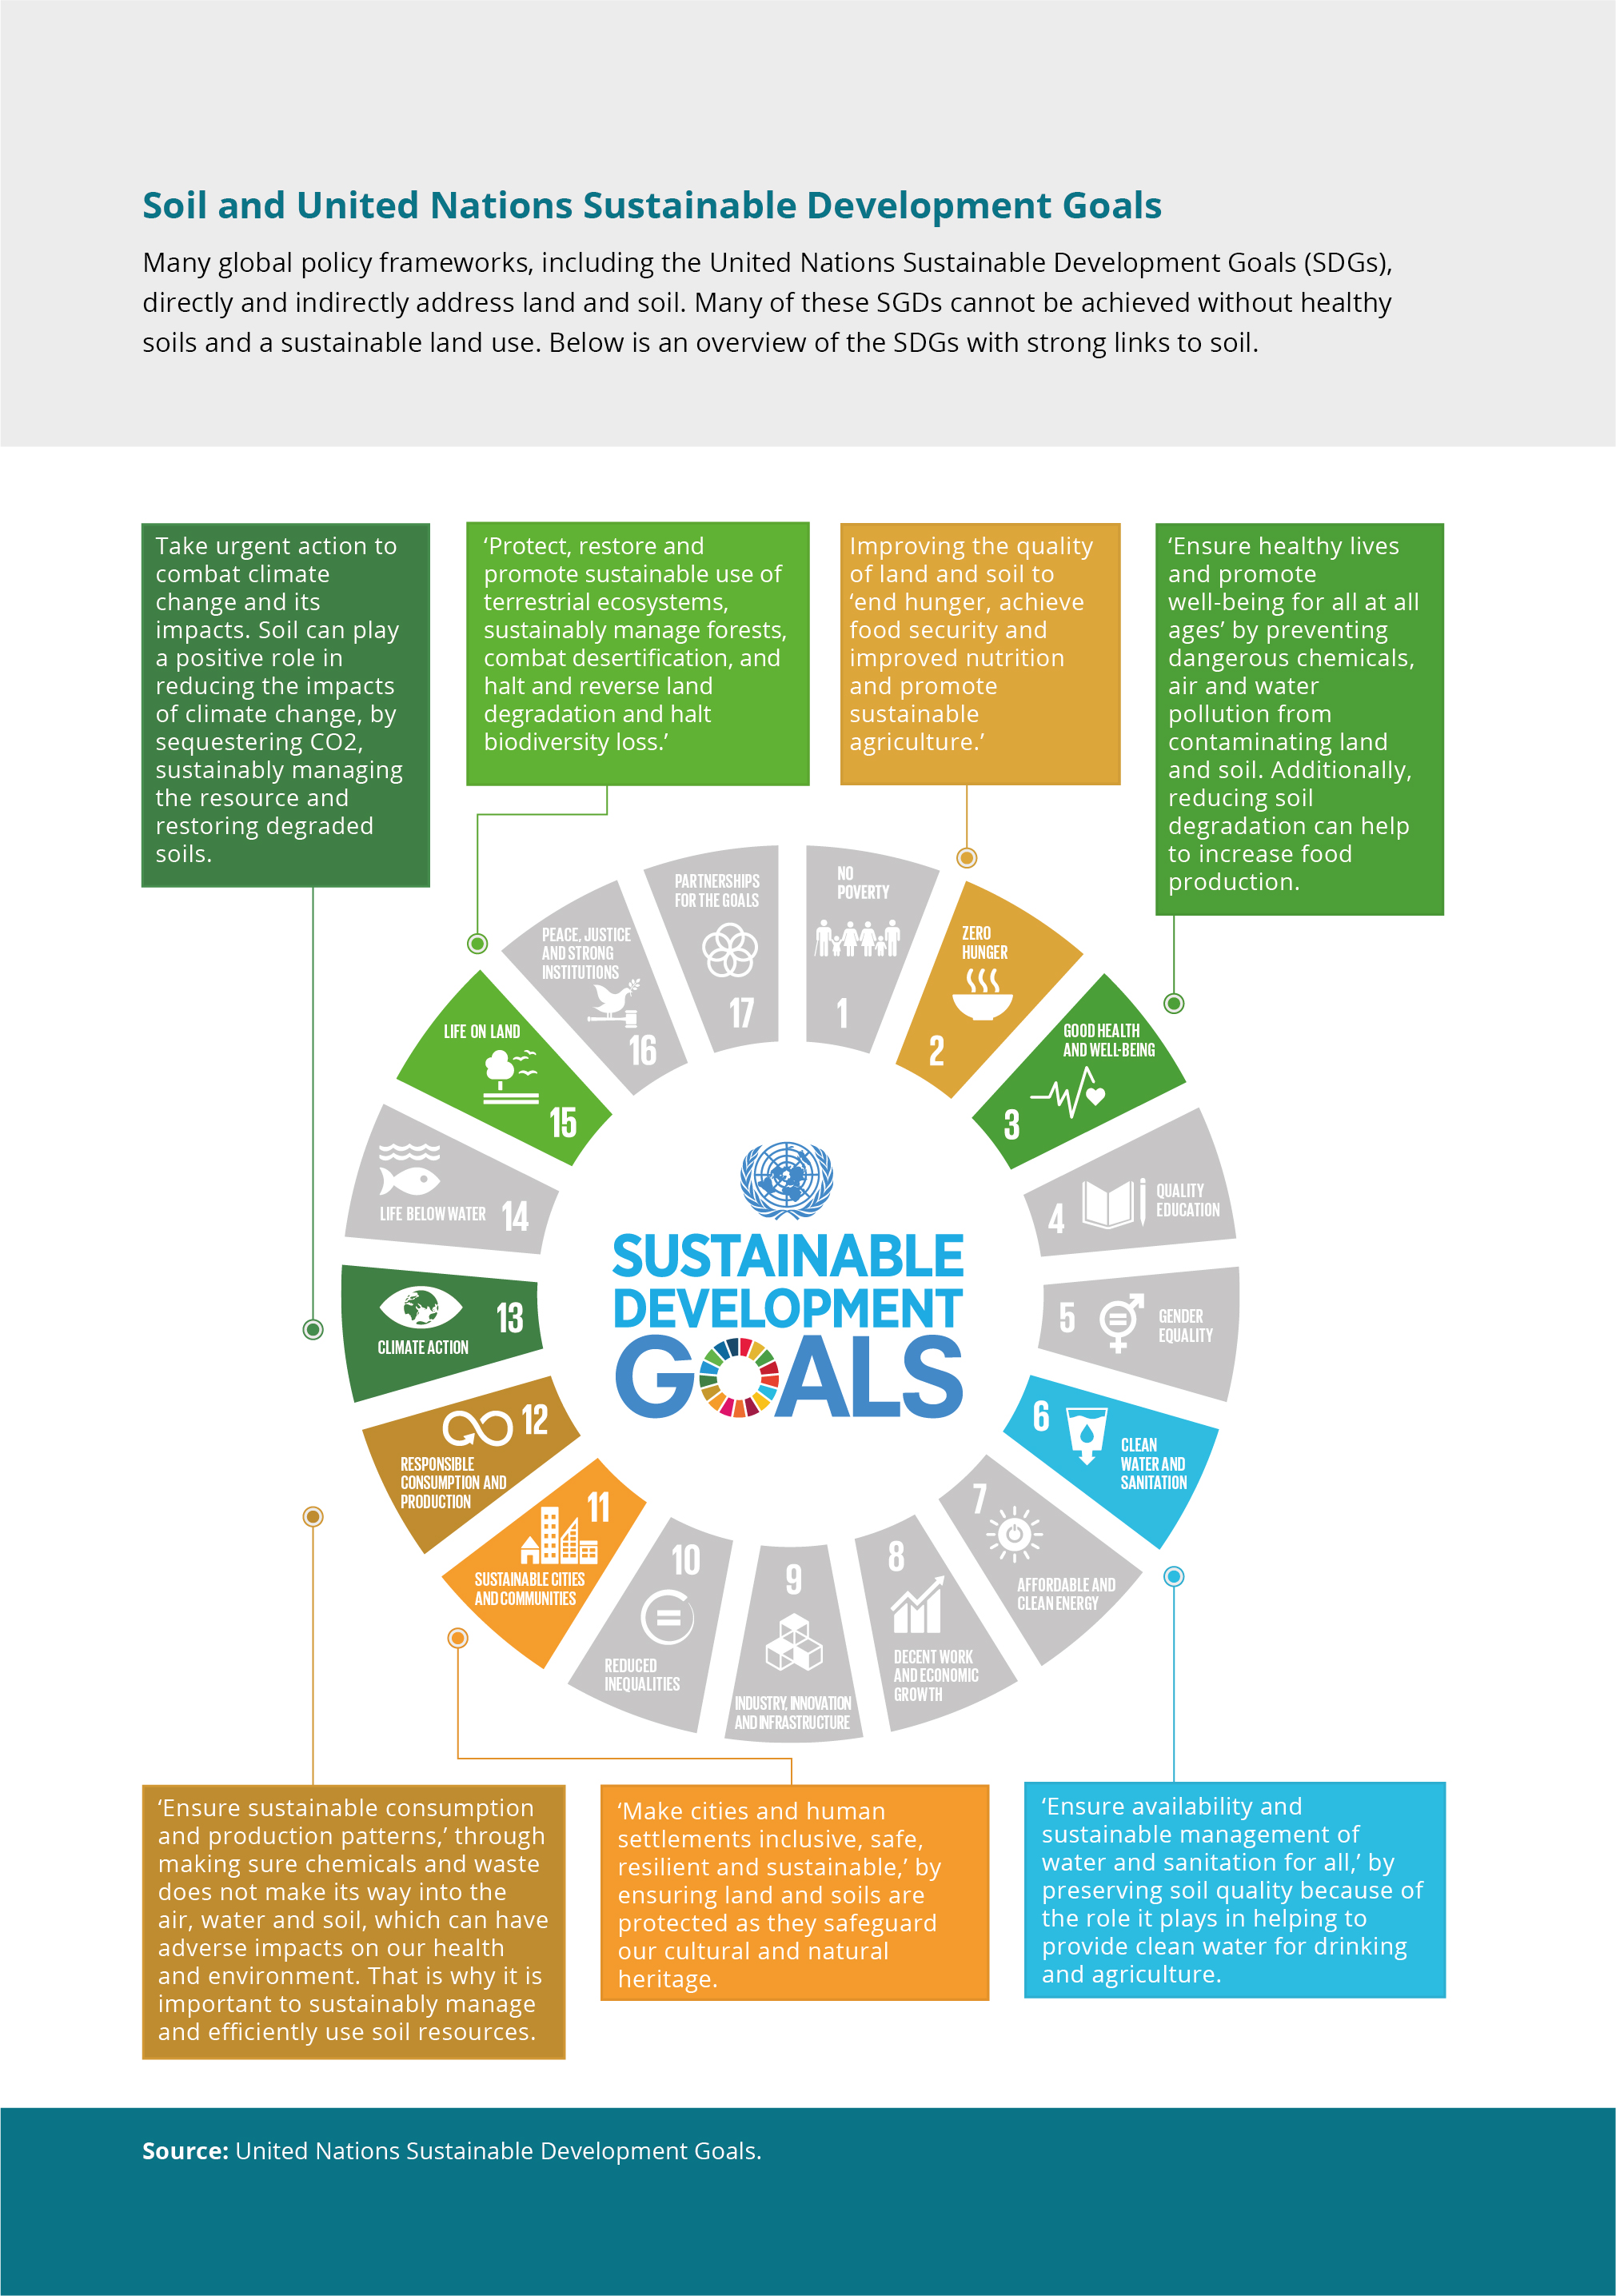 Soil and United Nations Sustainable Development Goals